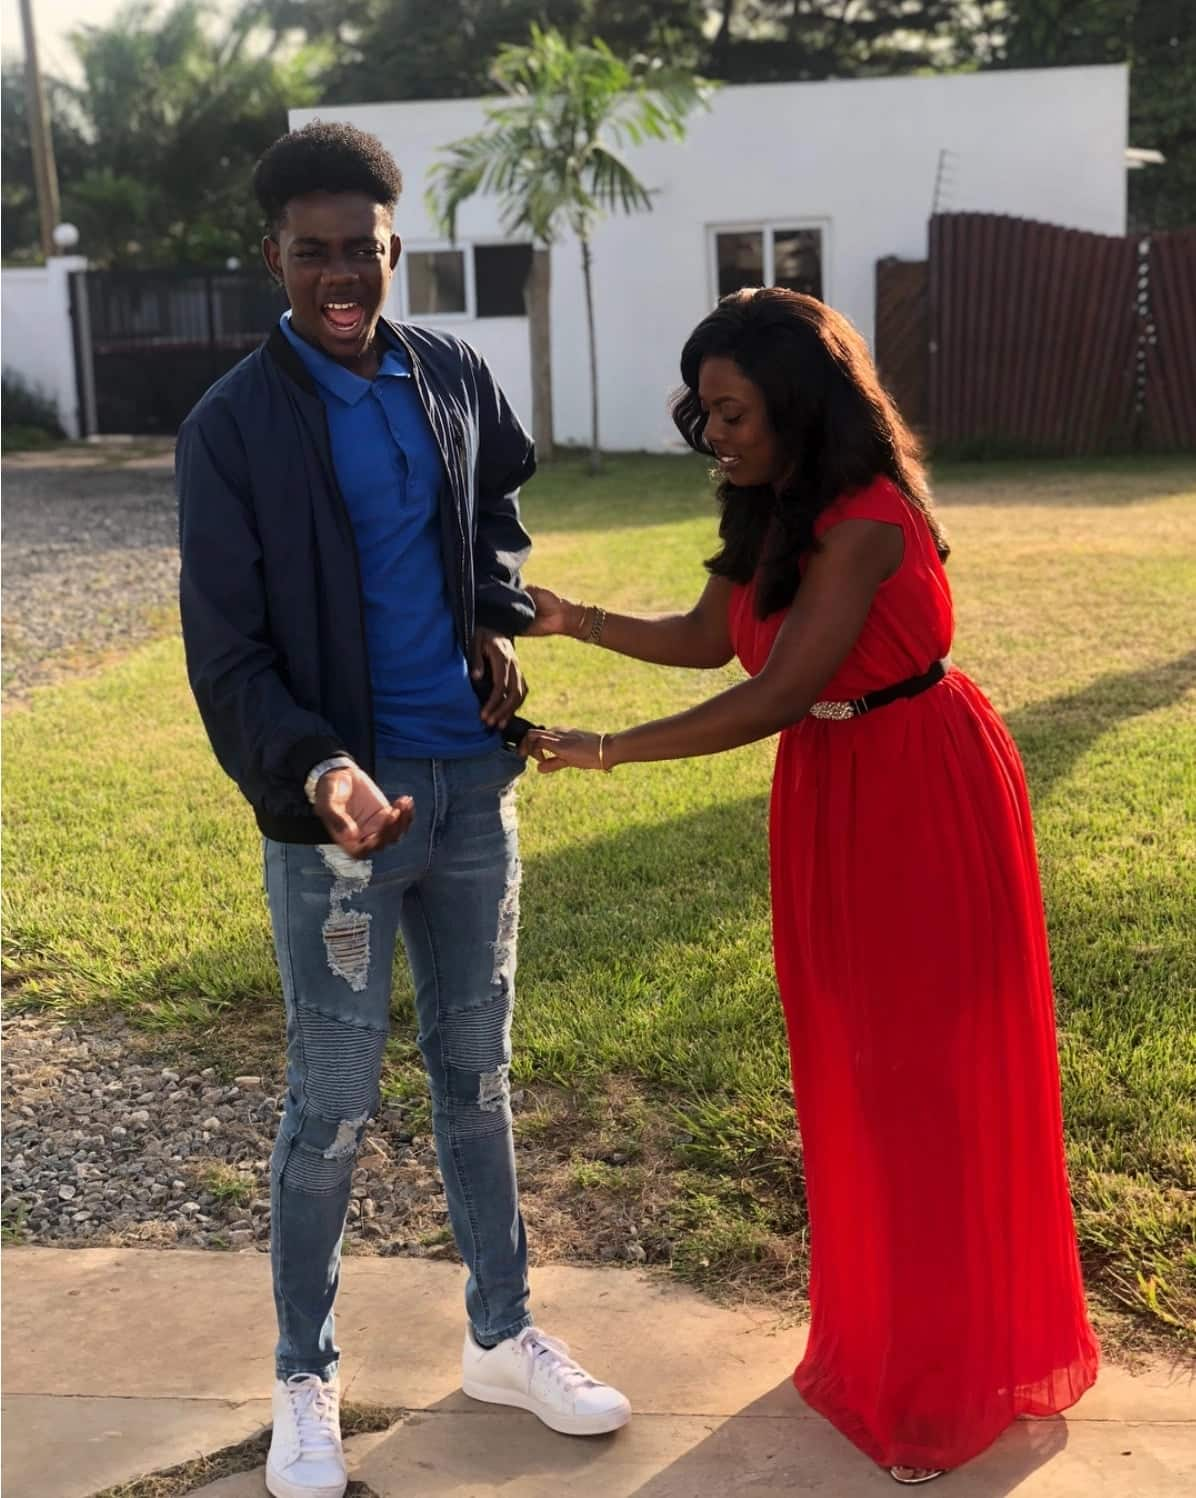 Latest photos of Nana Aba Anamoah's handsome son get fans drooling